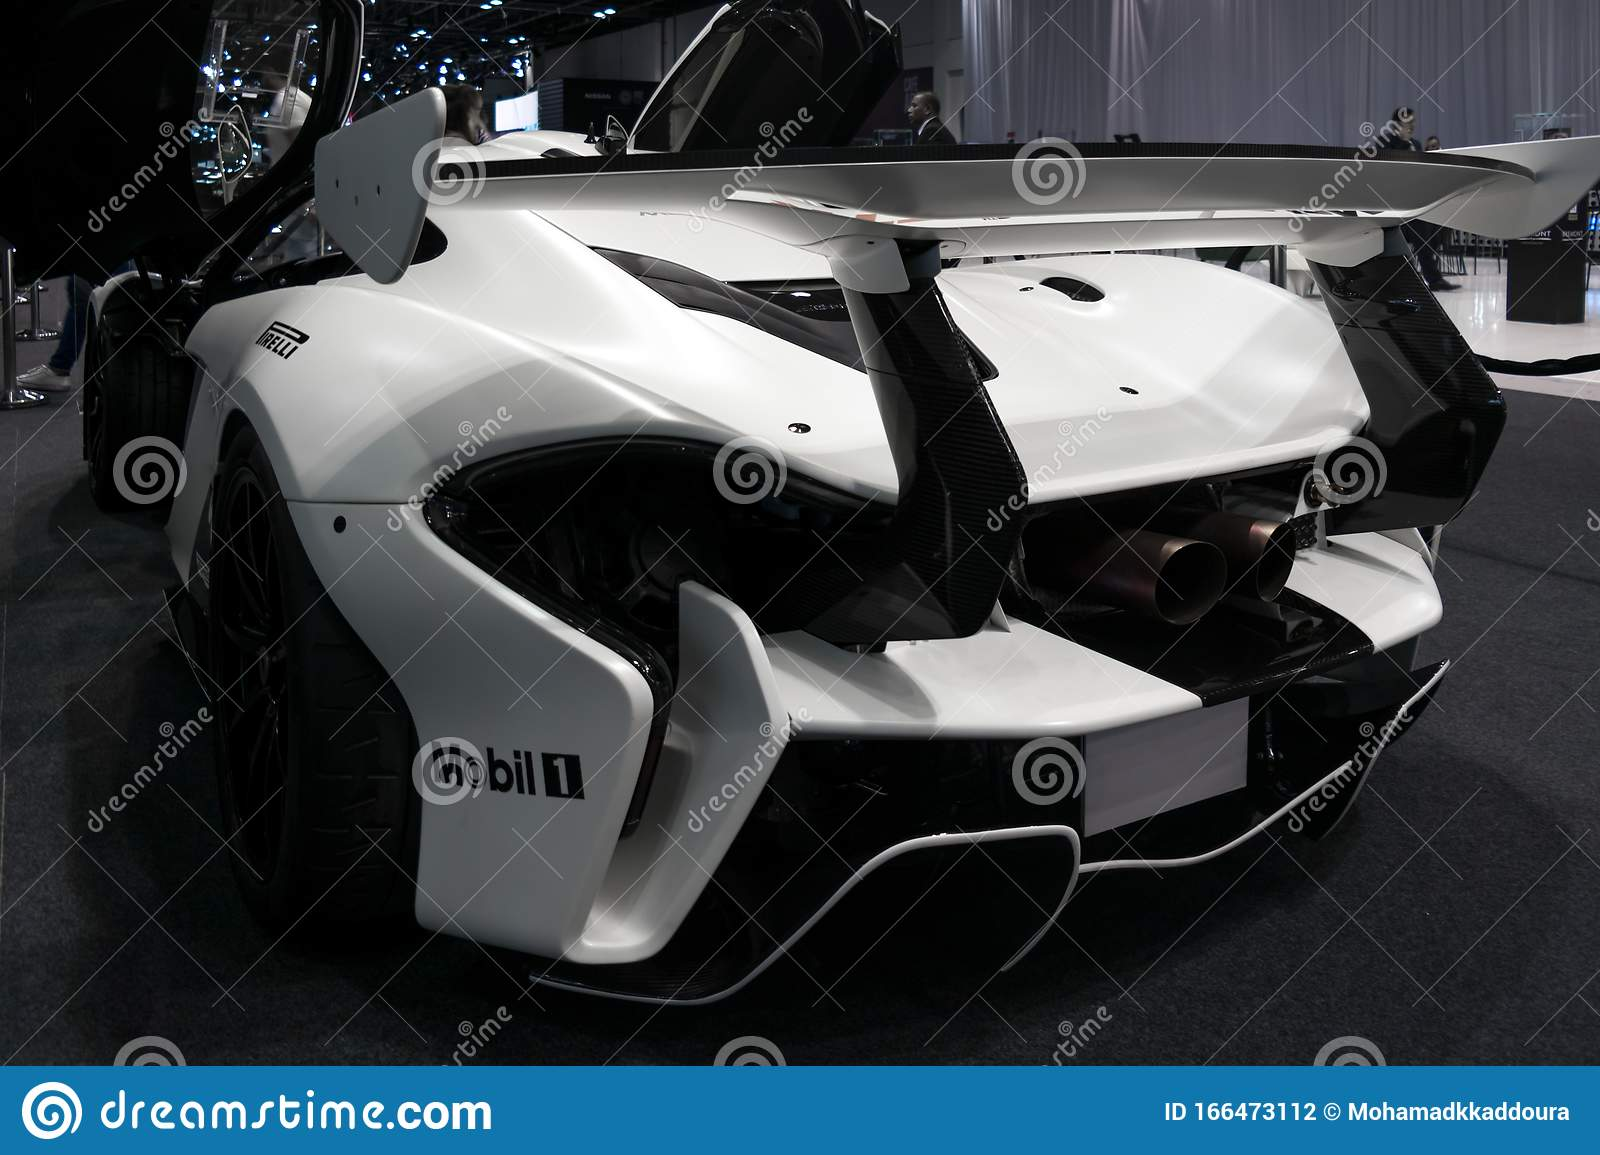 Modified Track White Mclaren P1 Displayed In Dubai Car Show High Performance Exotic Cars Editorial Photography Image Of Model Beauty 166473112